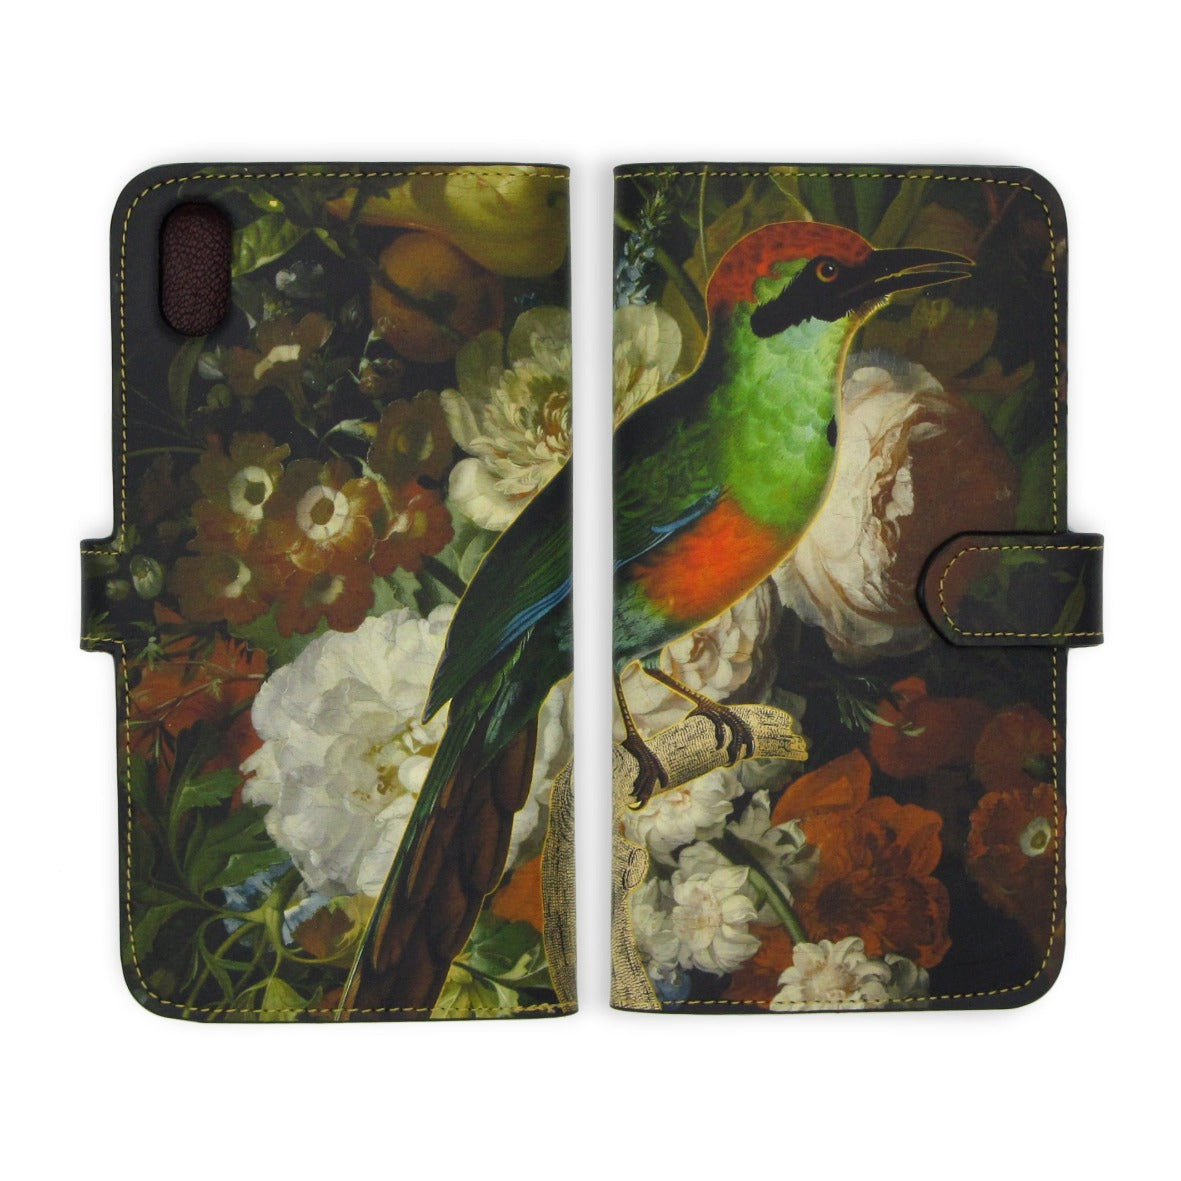 Leather Folio Phone Case - Botanical Dream